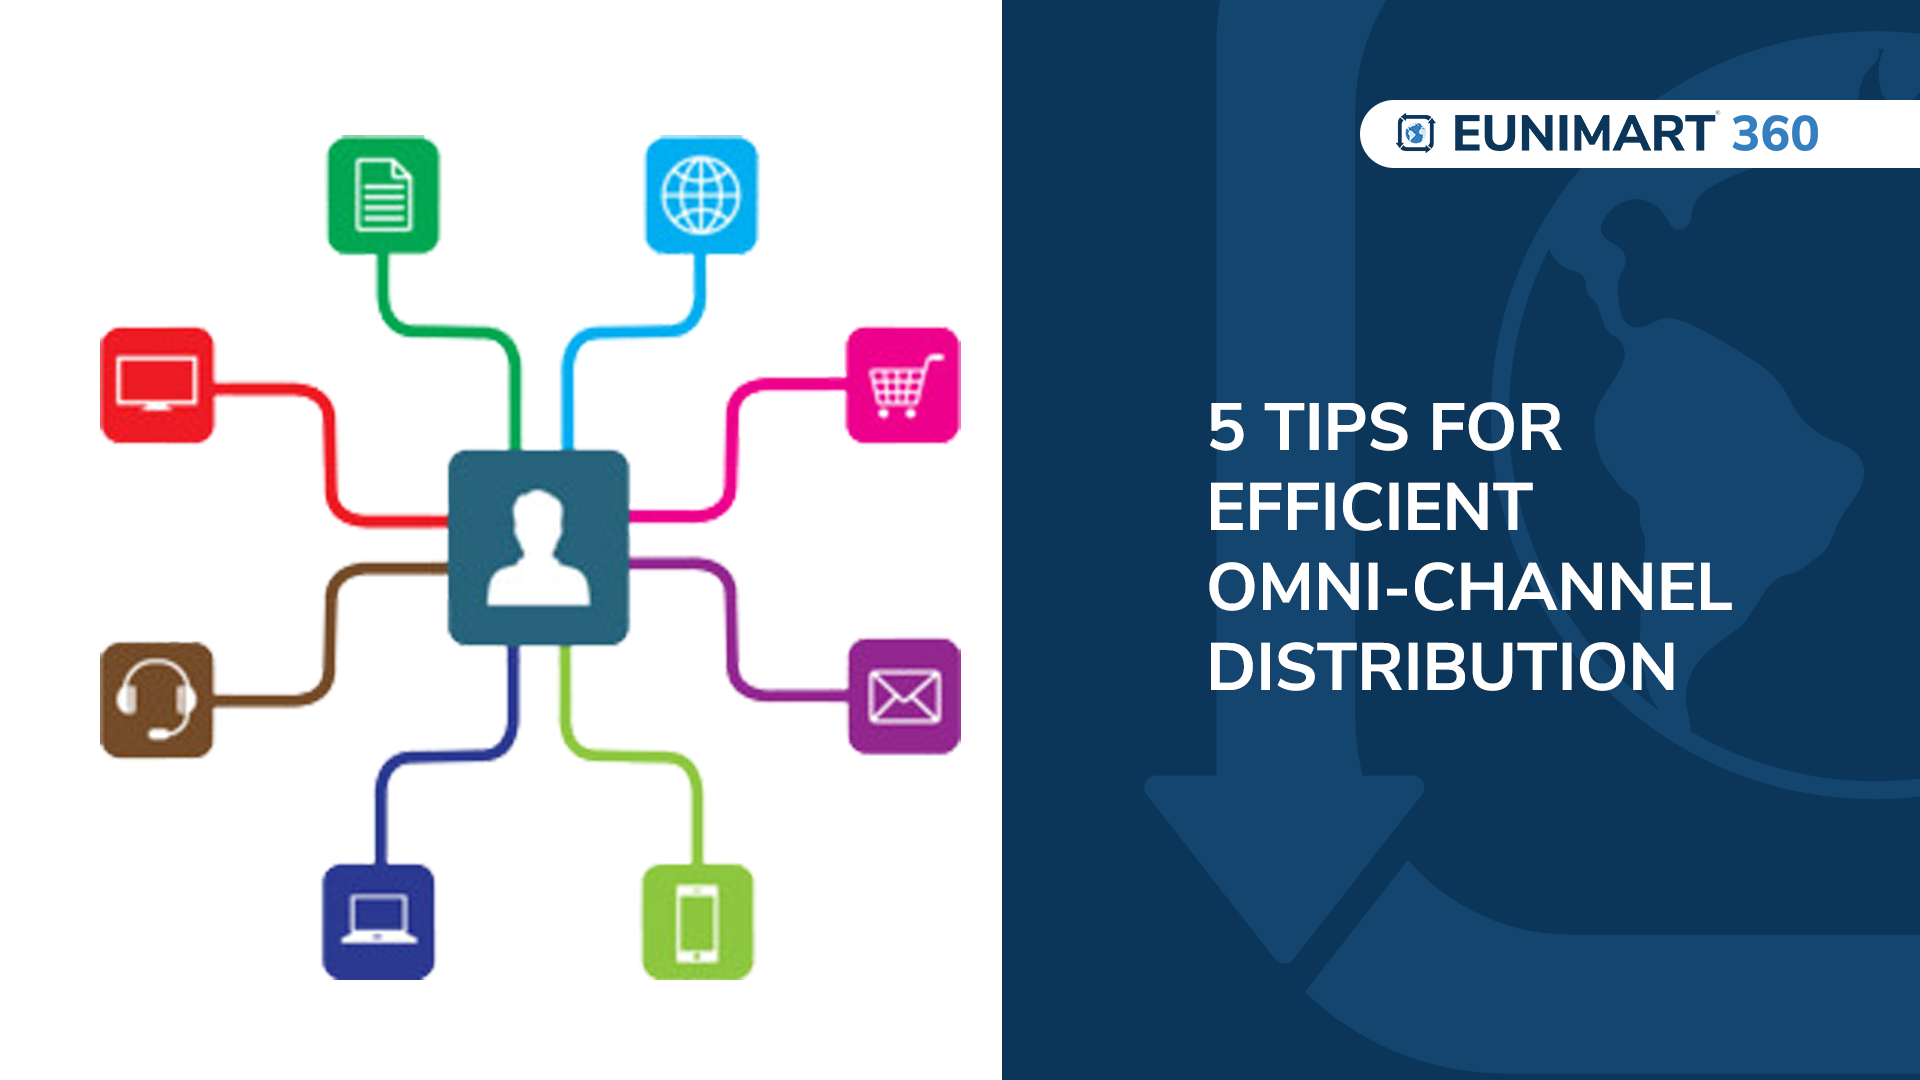 5 Tips for Efficient Omni-Channel Distribution